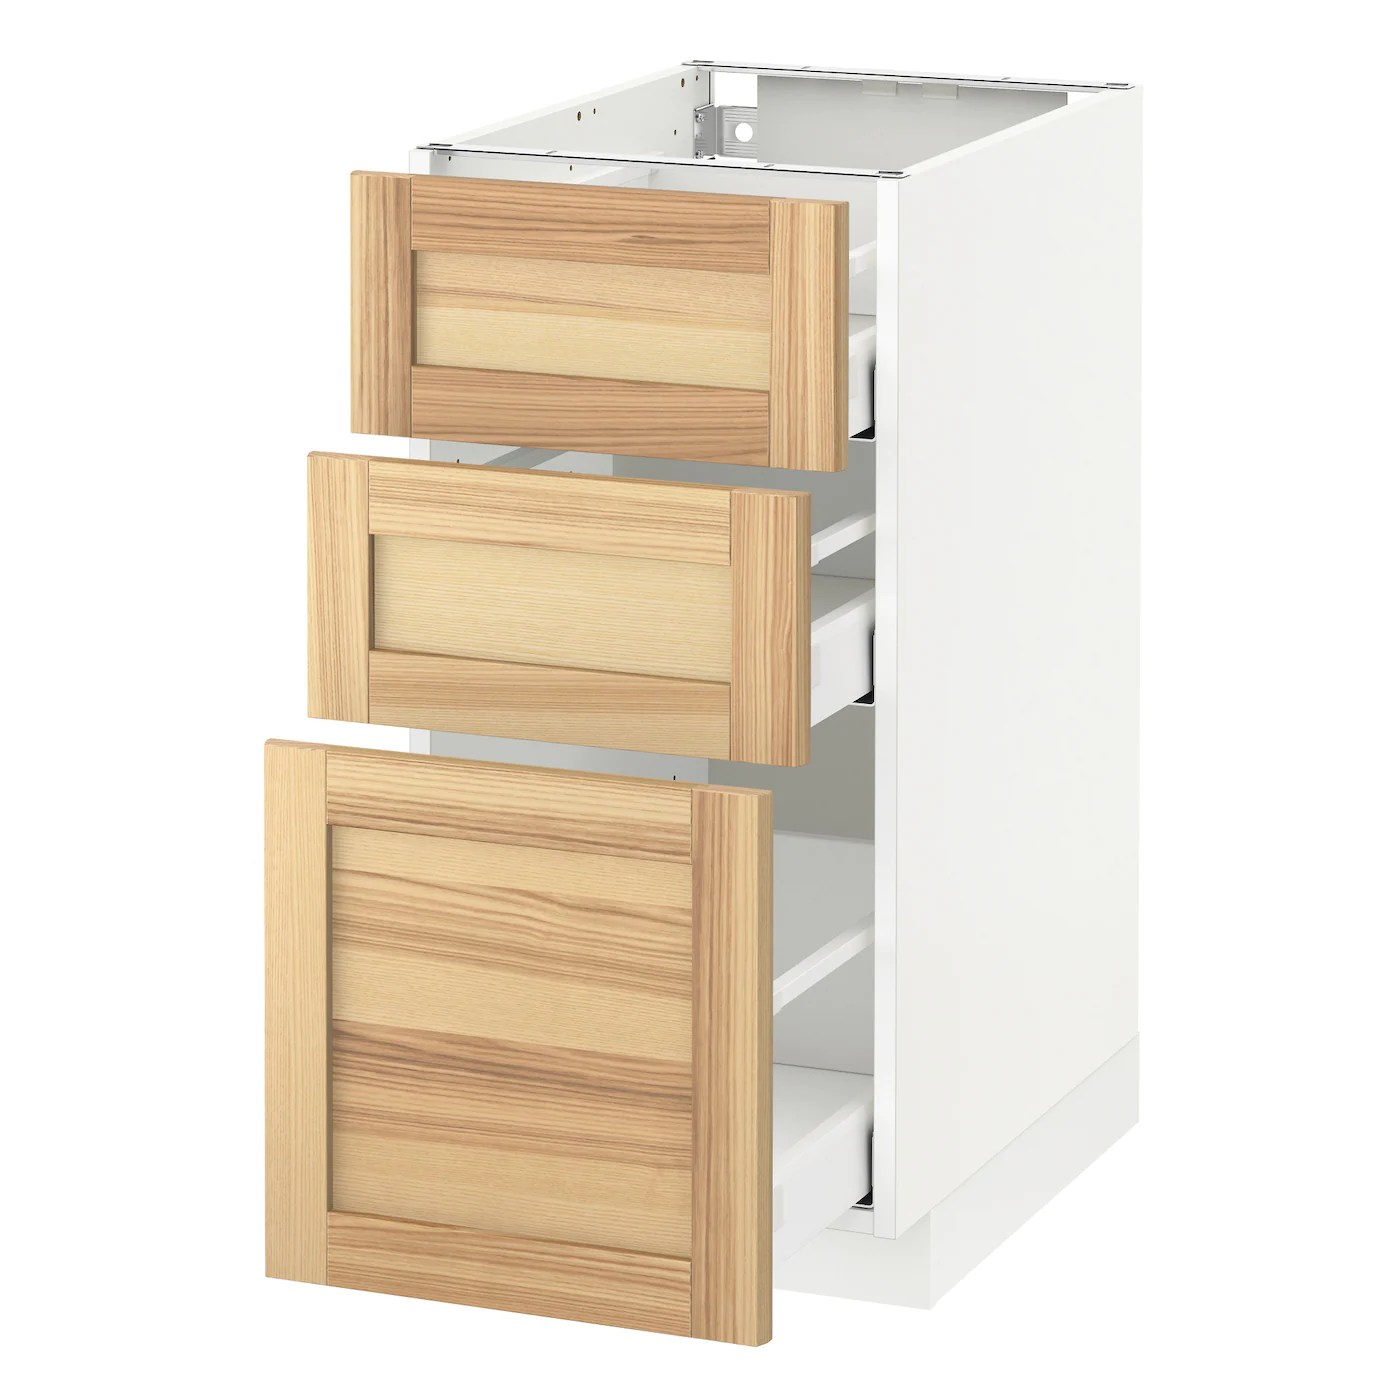 Ikea Küche Torhamn Metod Maximera Base Cabinet With 3 Drawers White Torhamn